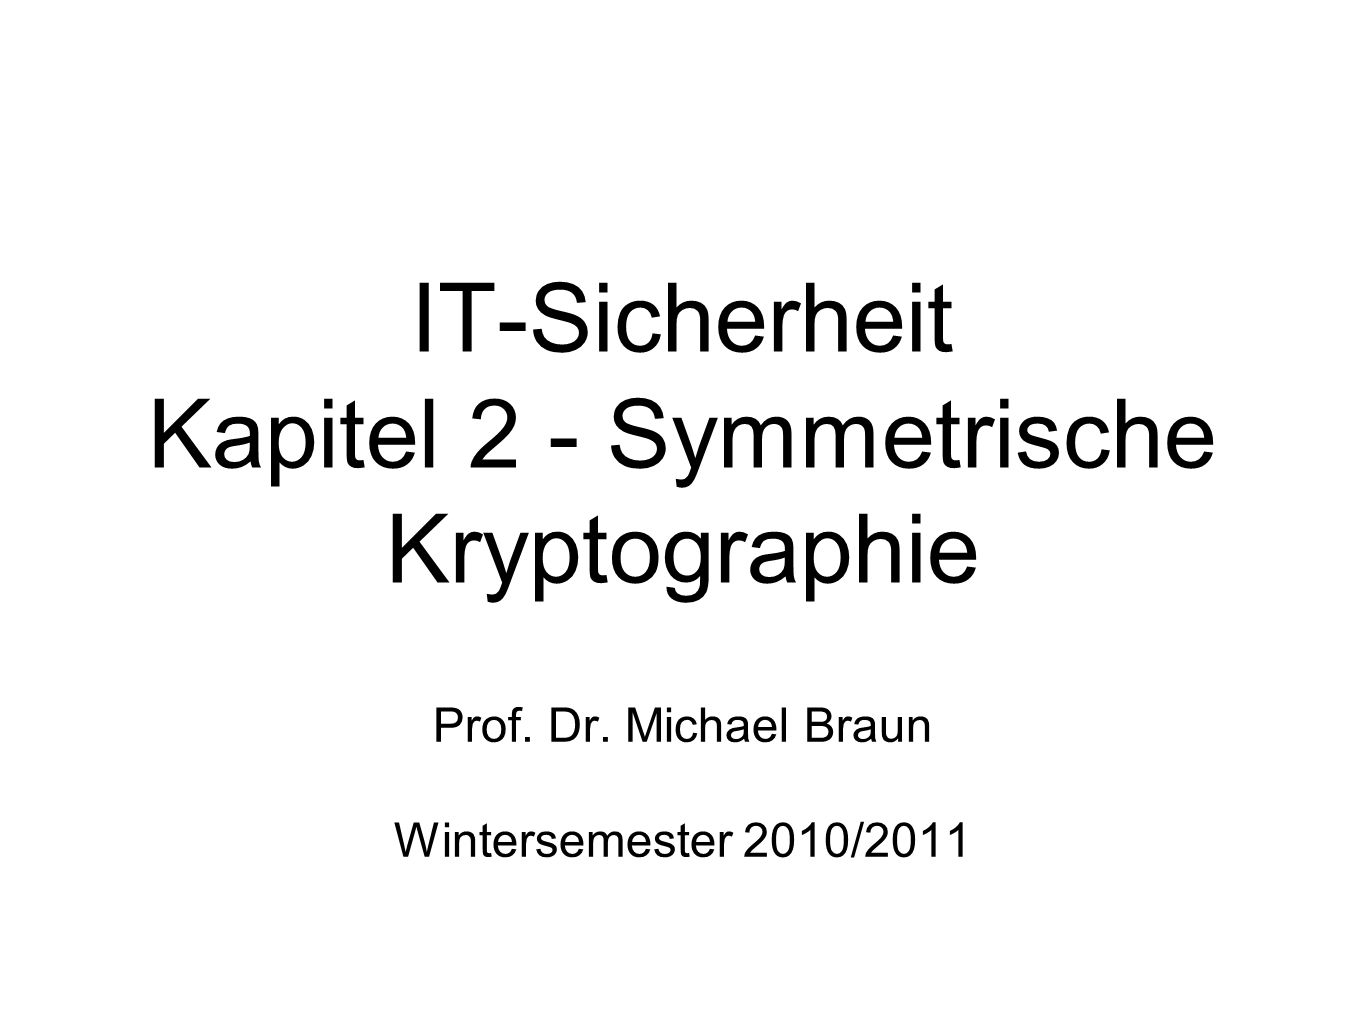 IT-Sicherheit Kapitel 2 - Symmetrische Kryptographie